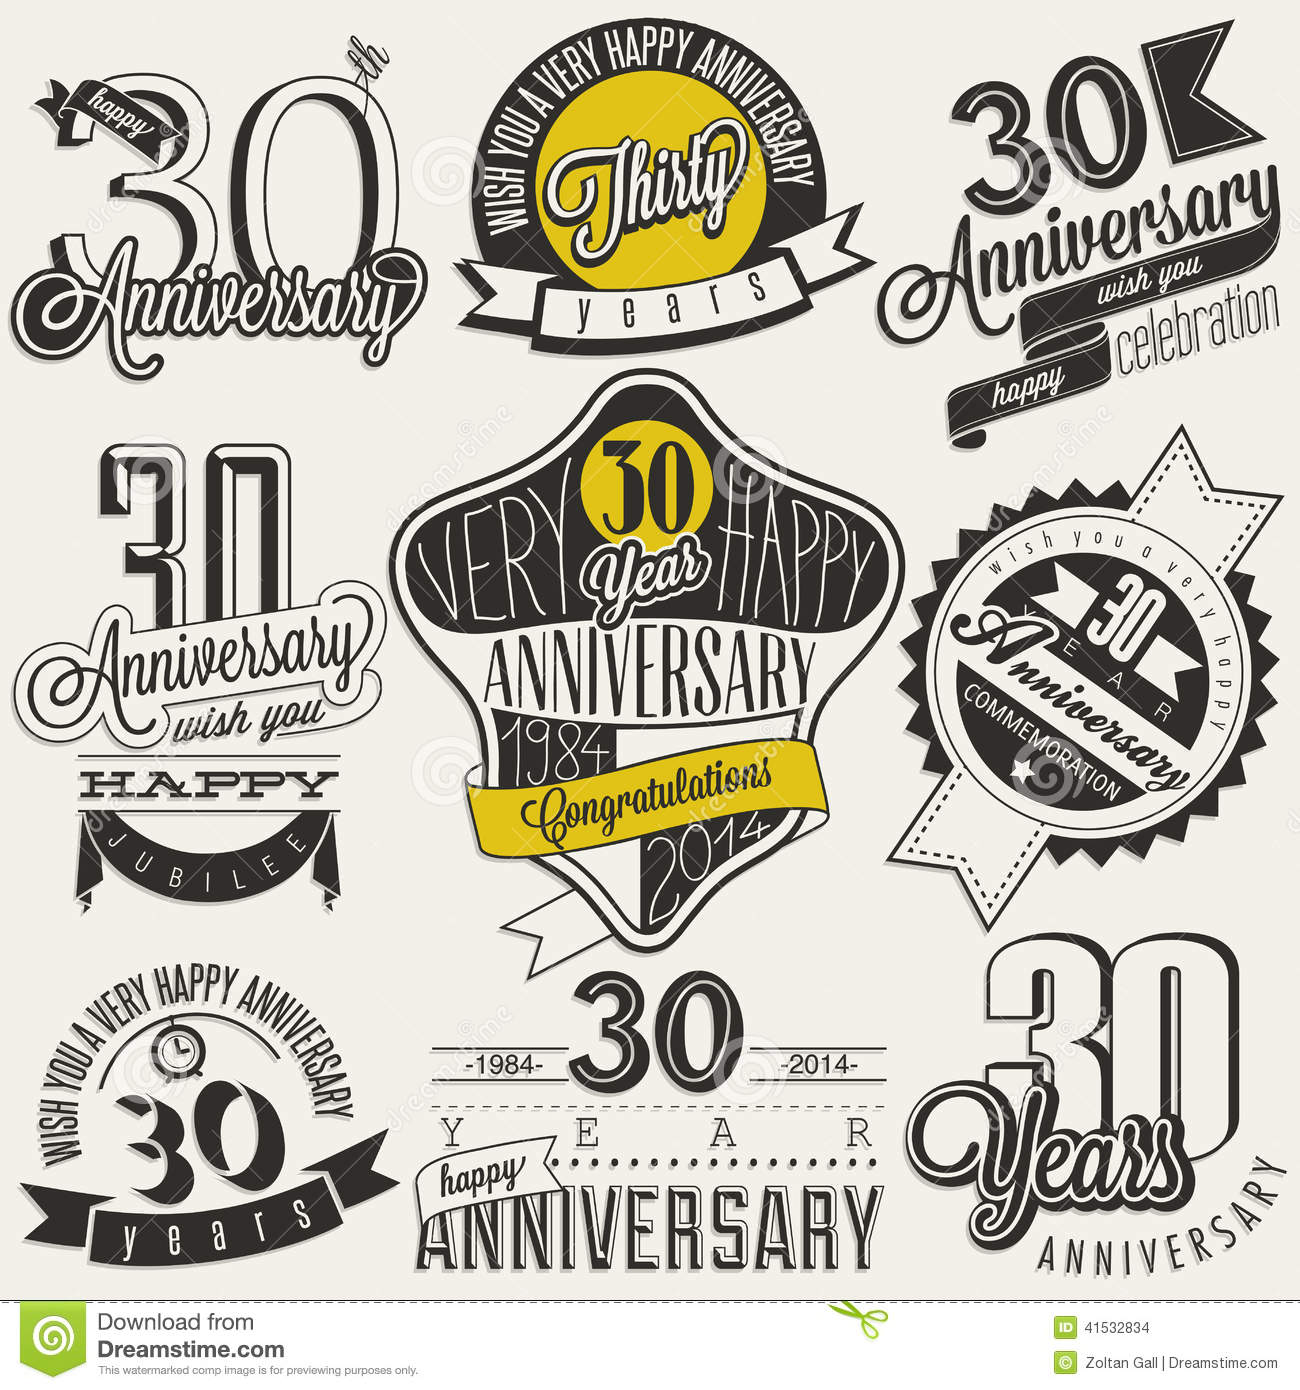 30 Year Anniversary Symbol: Vintage Style 30 Anniversary Collection. Stock Vector